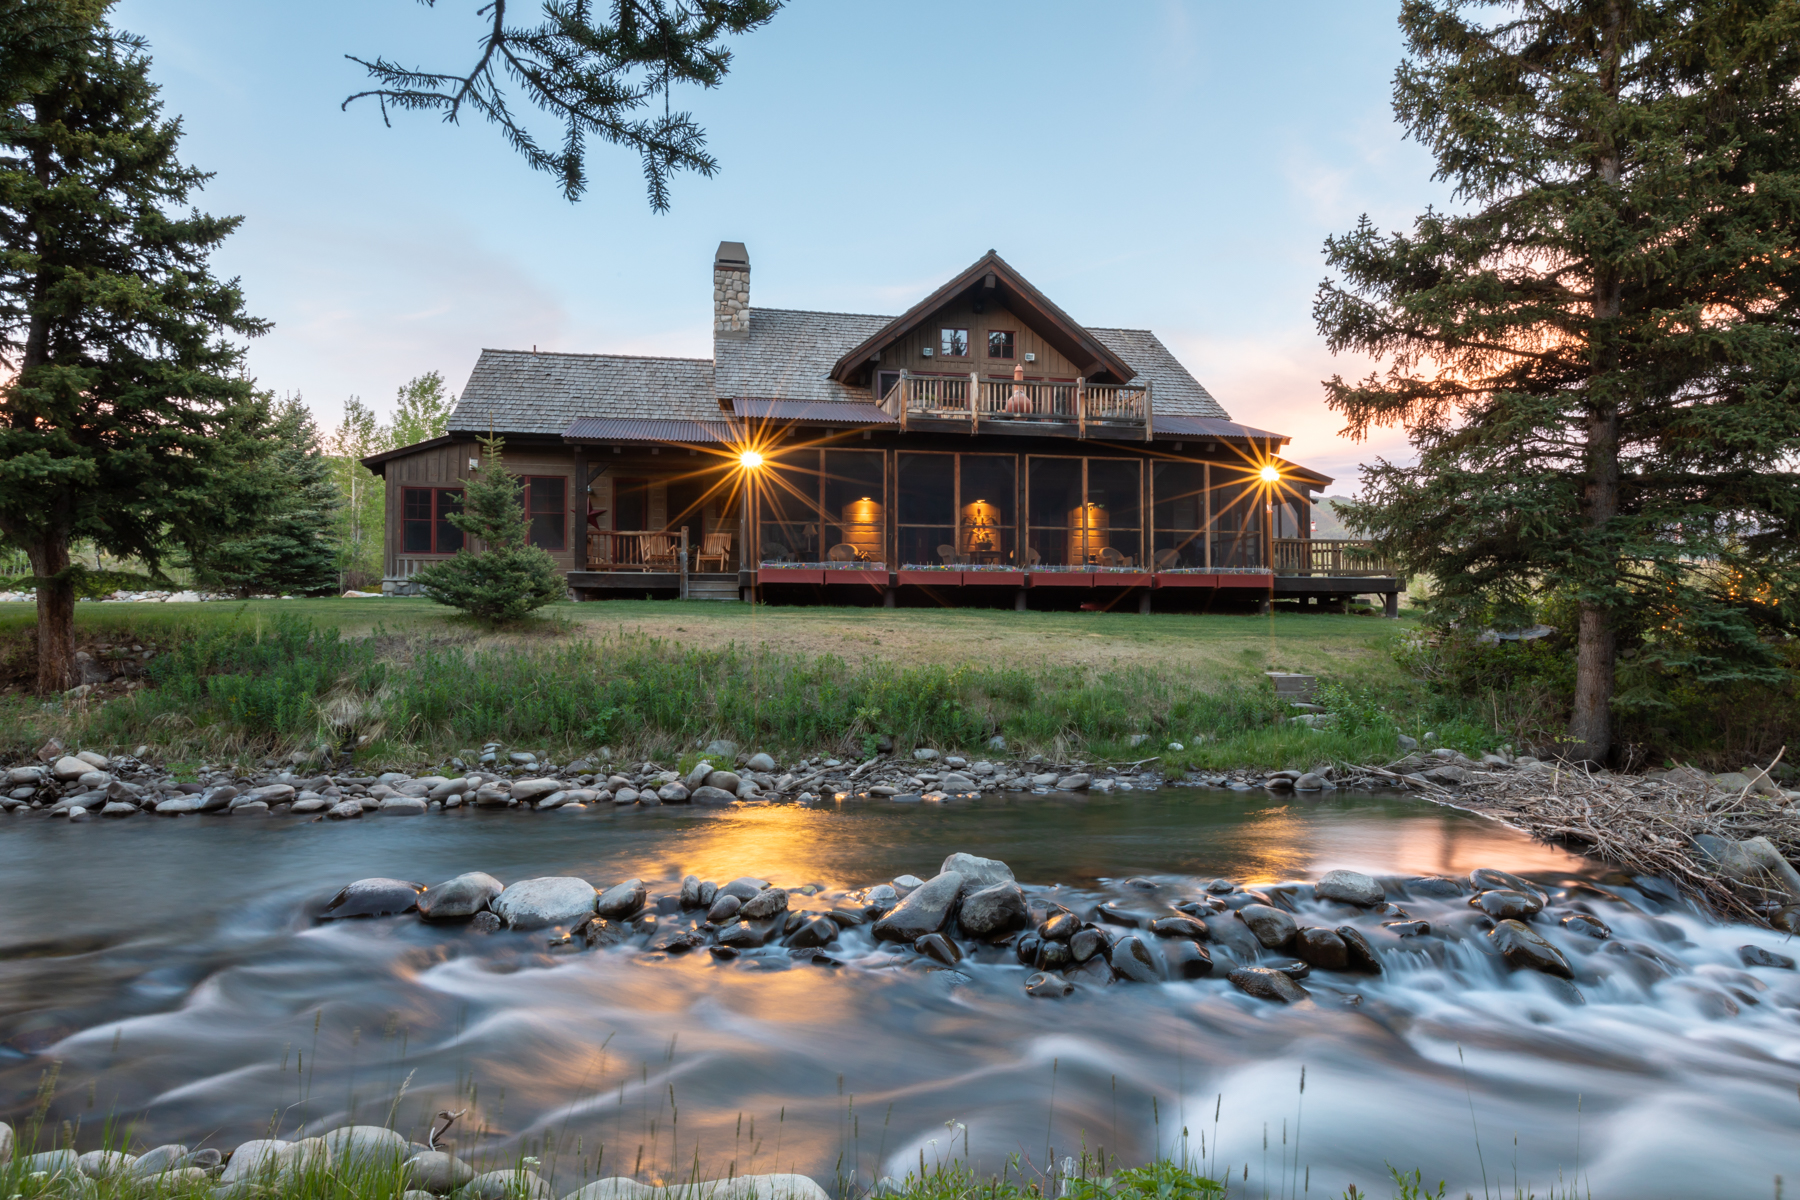 Single Family Home for Active at Private Estate on the East River 507 S Ranch Road Crested Butte, Colorado 81224 United States